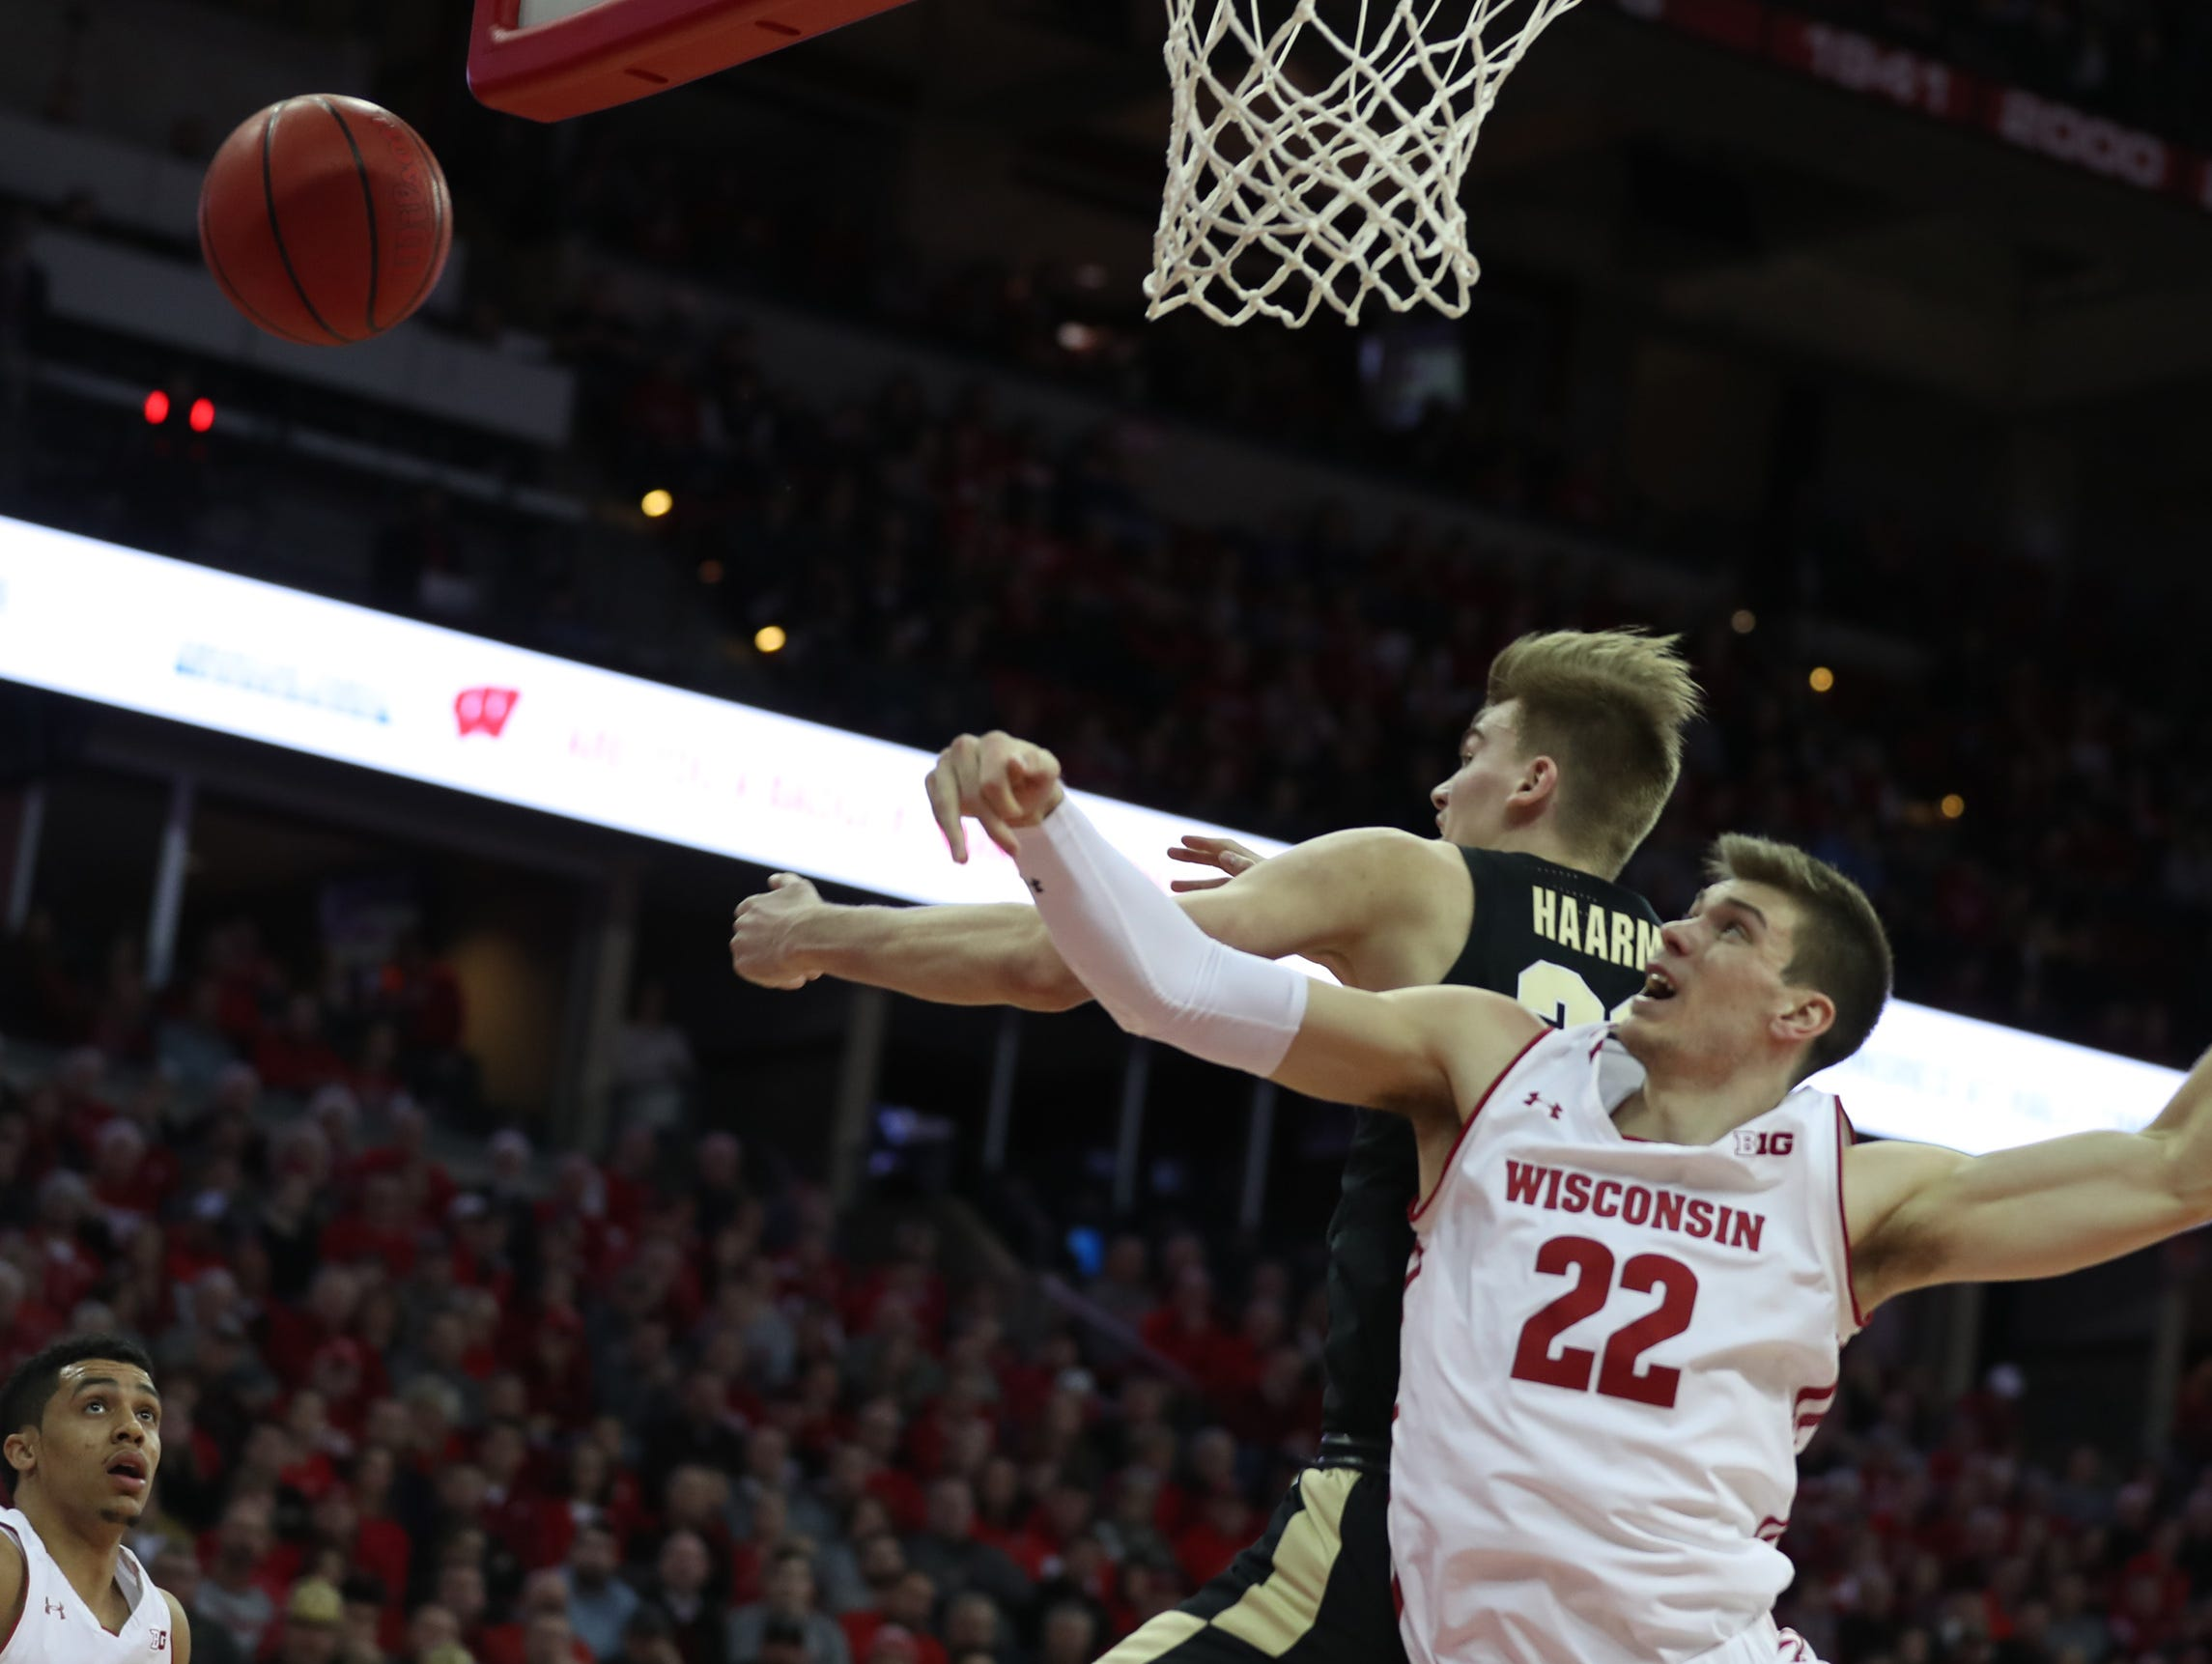 Jan 11, 2019; Madison, WI, USA; Wisconsin Badgers forward Ethan Happ (22) and Purdue Boilermakers forward Matt Haarms (32) fight for a rebound during the first half at the Kohl Center. Mandatory Credit: Mary Langenfeld-USA TODAY Sports